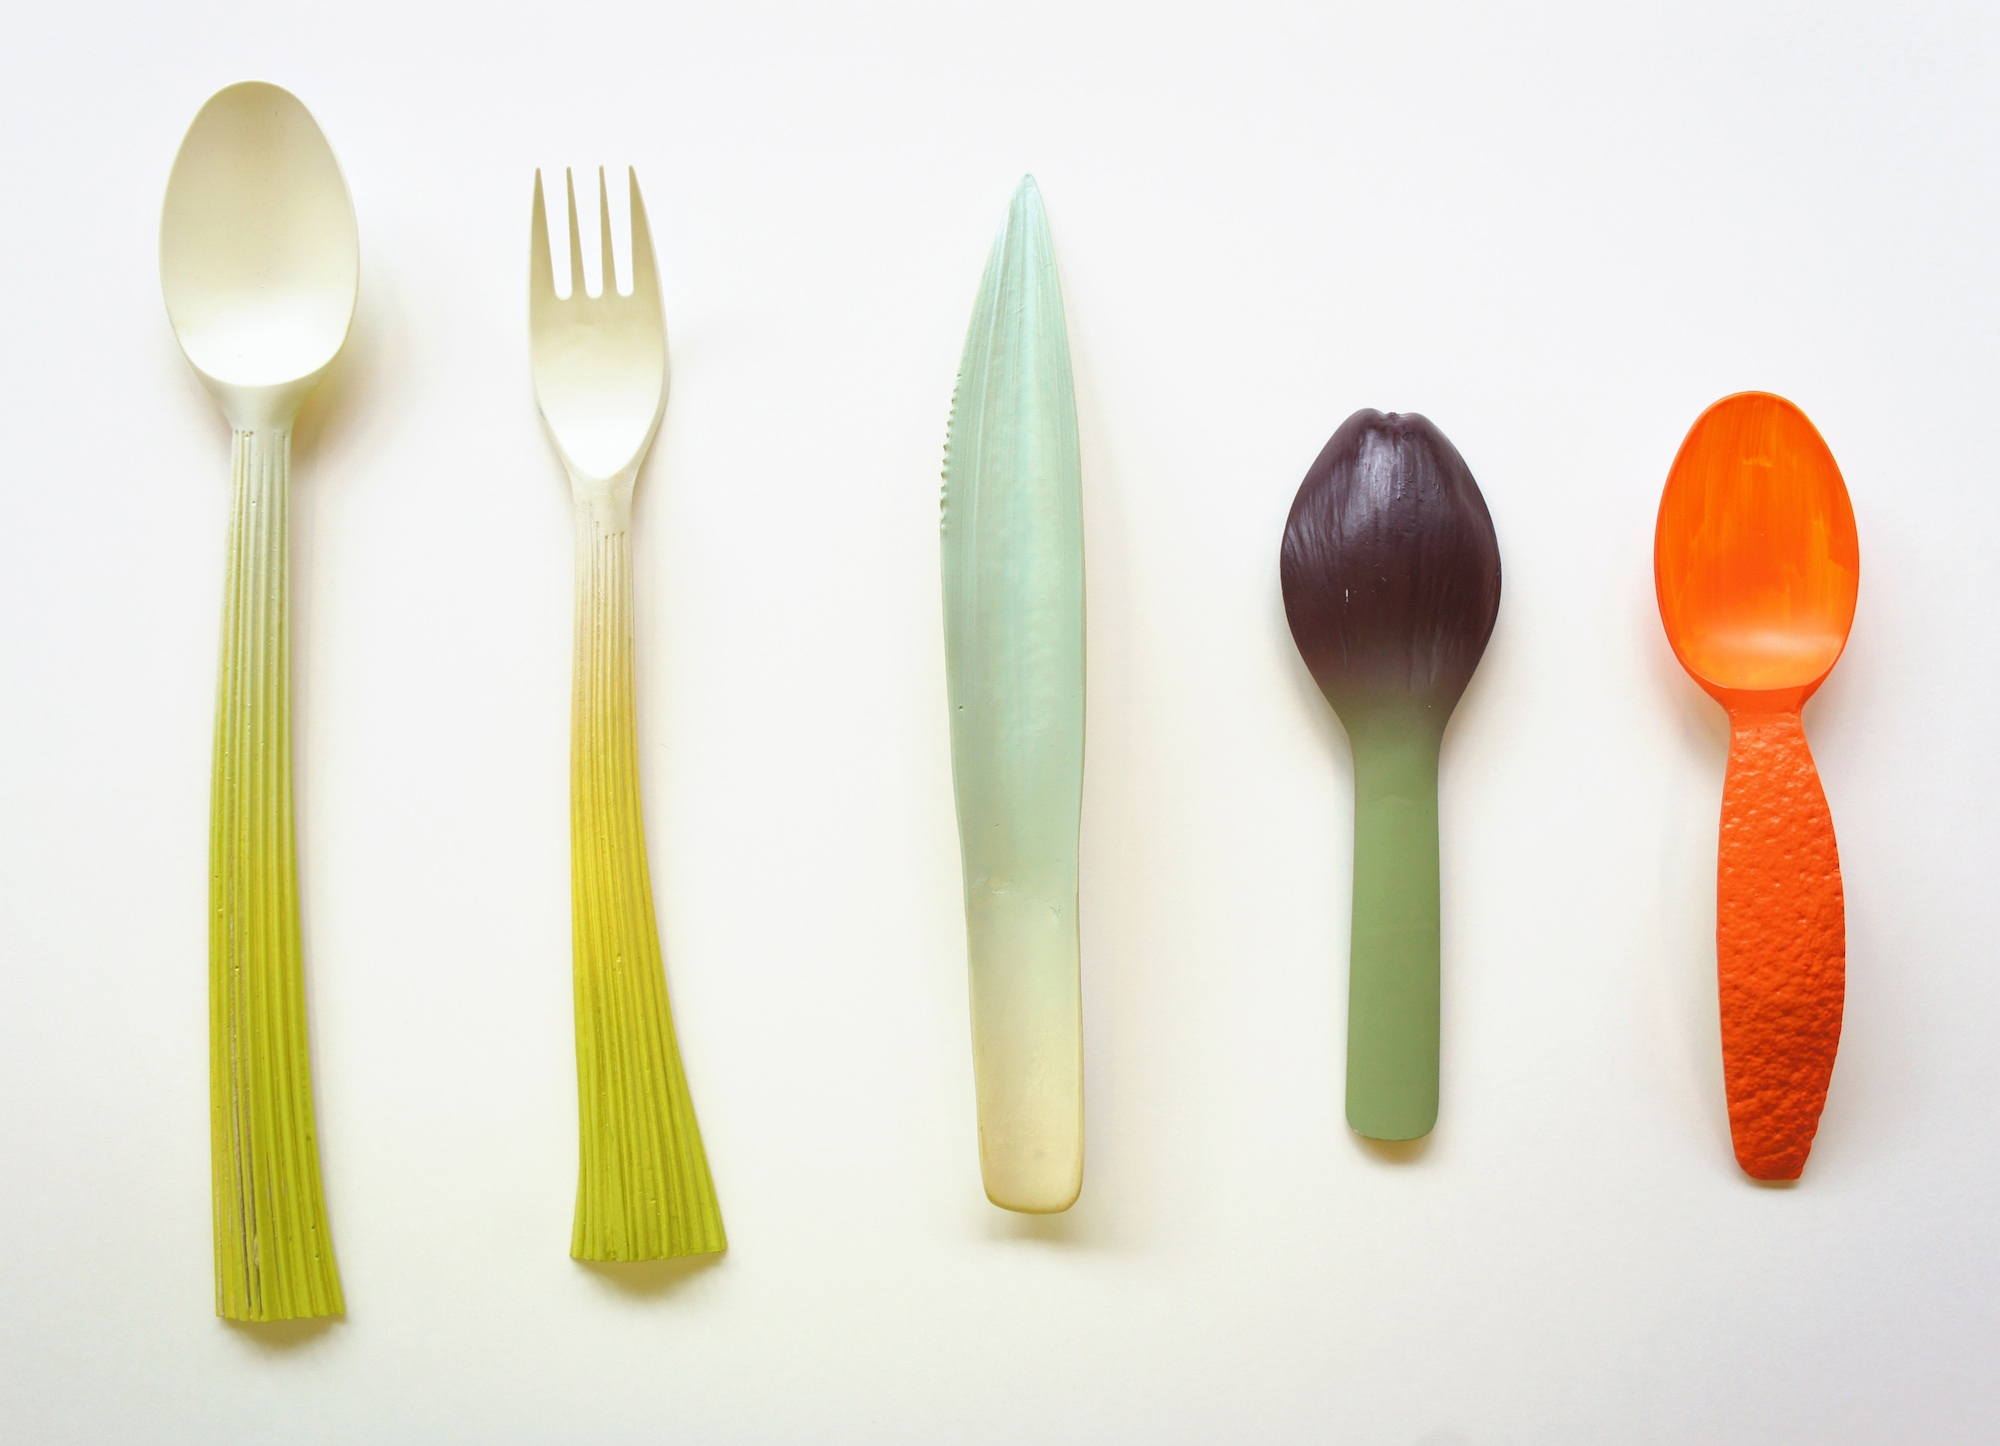 Chinese designer creates biodegradable utensils with corn starch designer Chinese designer creates biodegradable utensils with corn starch Chinese designer creates biodegradable utensils with corn starch 1